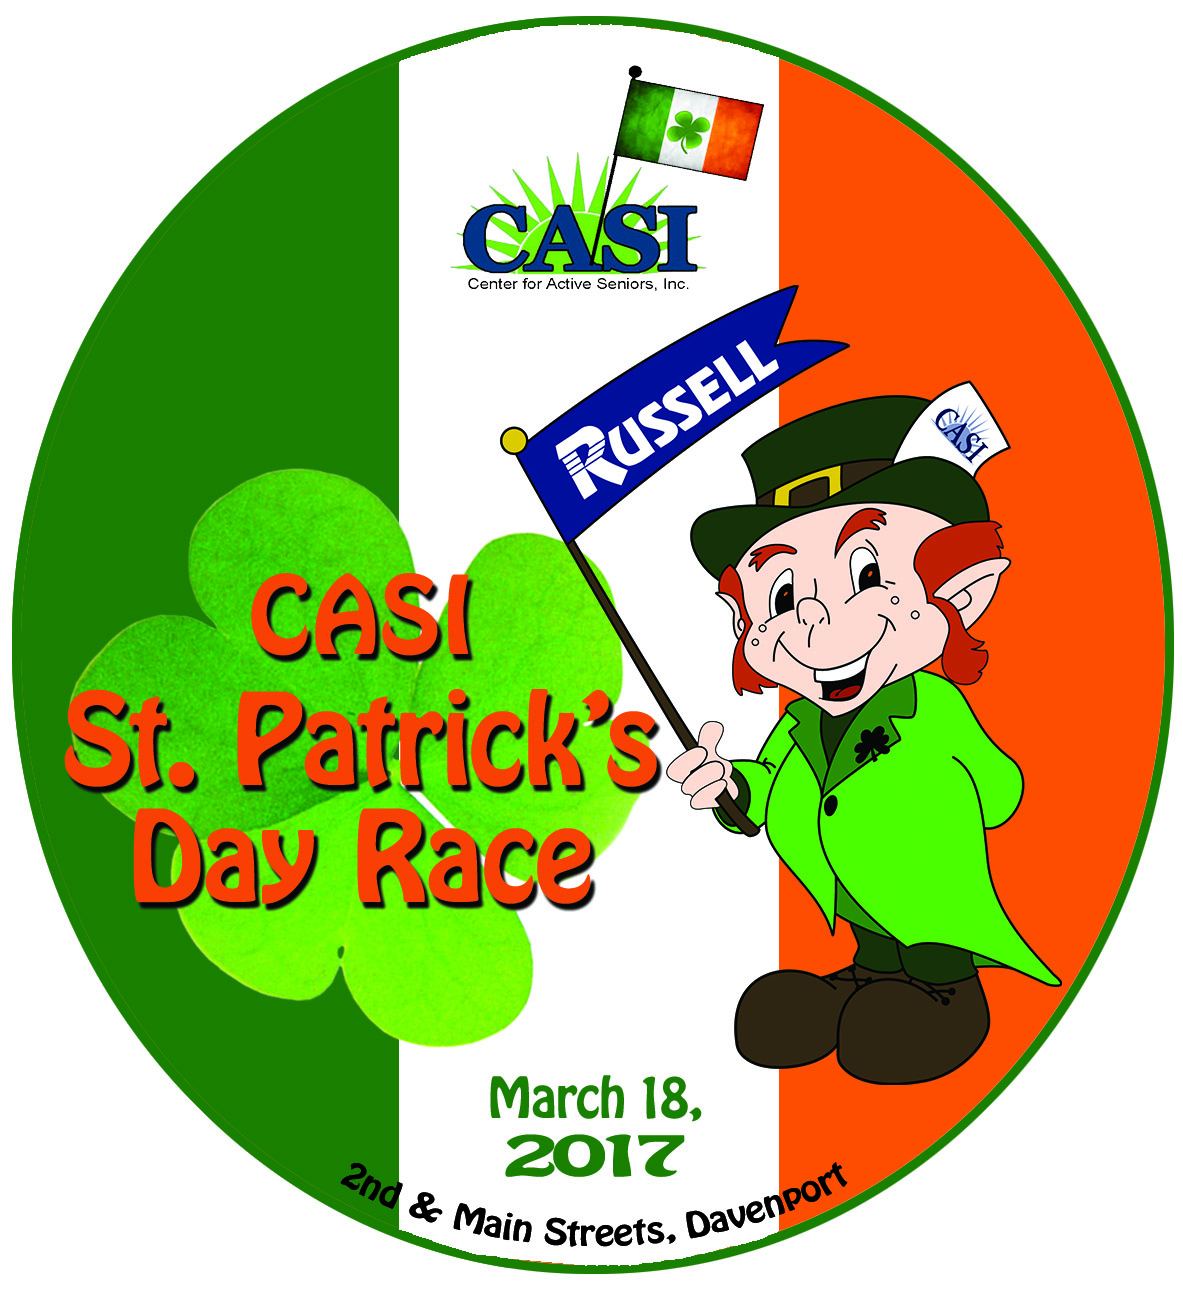 CASI's 35th Annual St. Patrick's Day Race logo